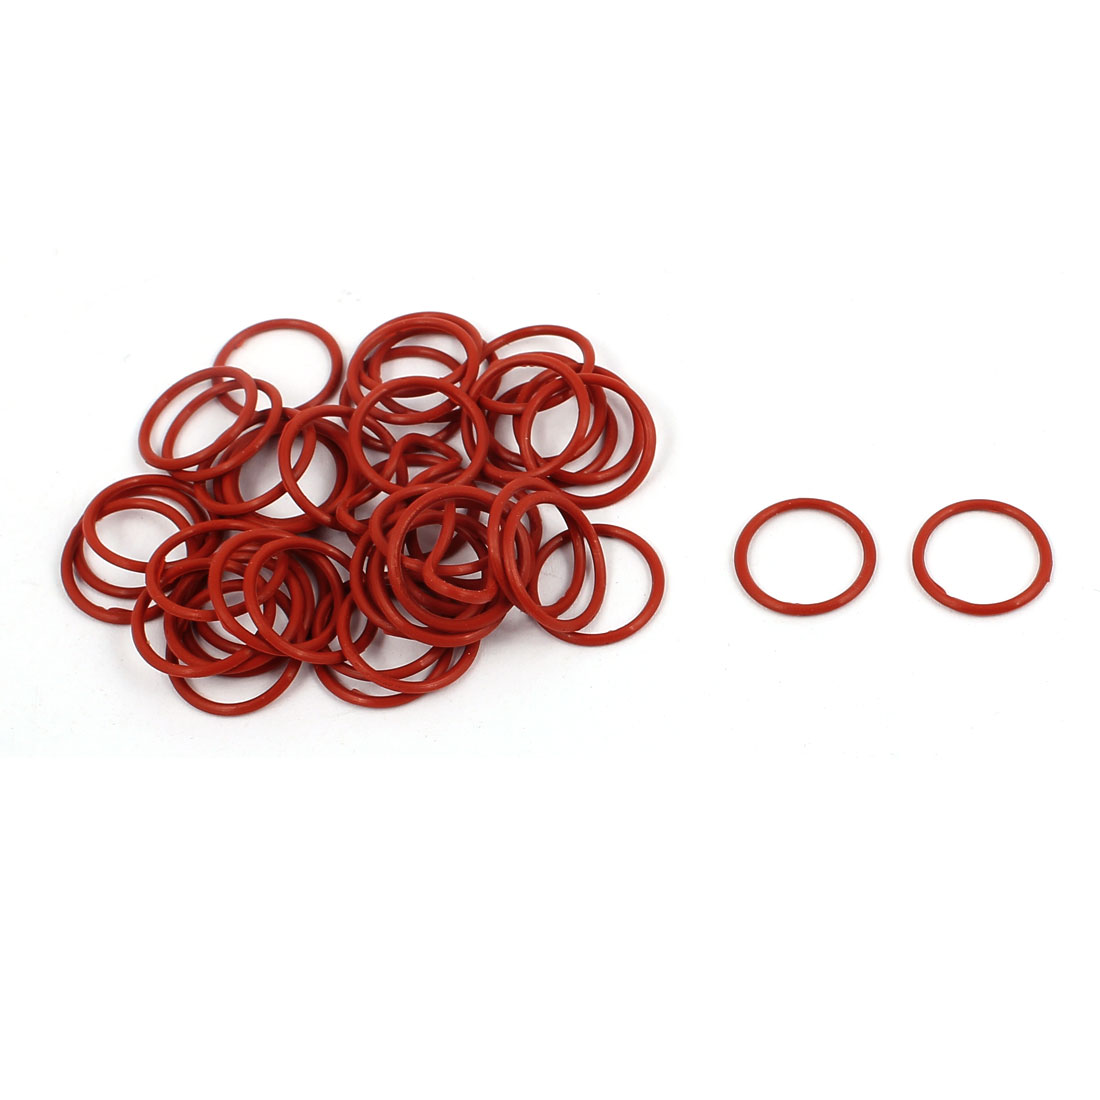 50Pcs 12mm x 1mm Rubber O-rings NBR Heat Resistant Sealing Ring Grommets Red